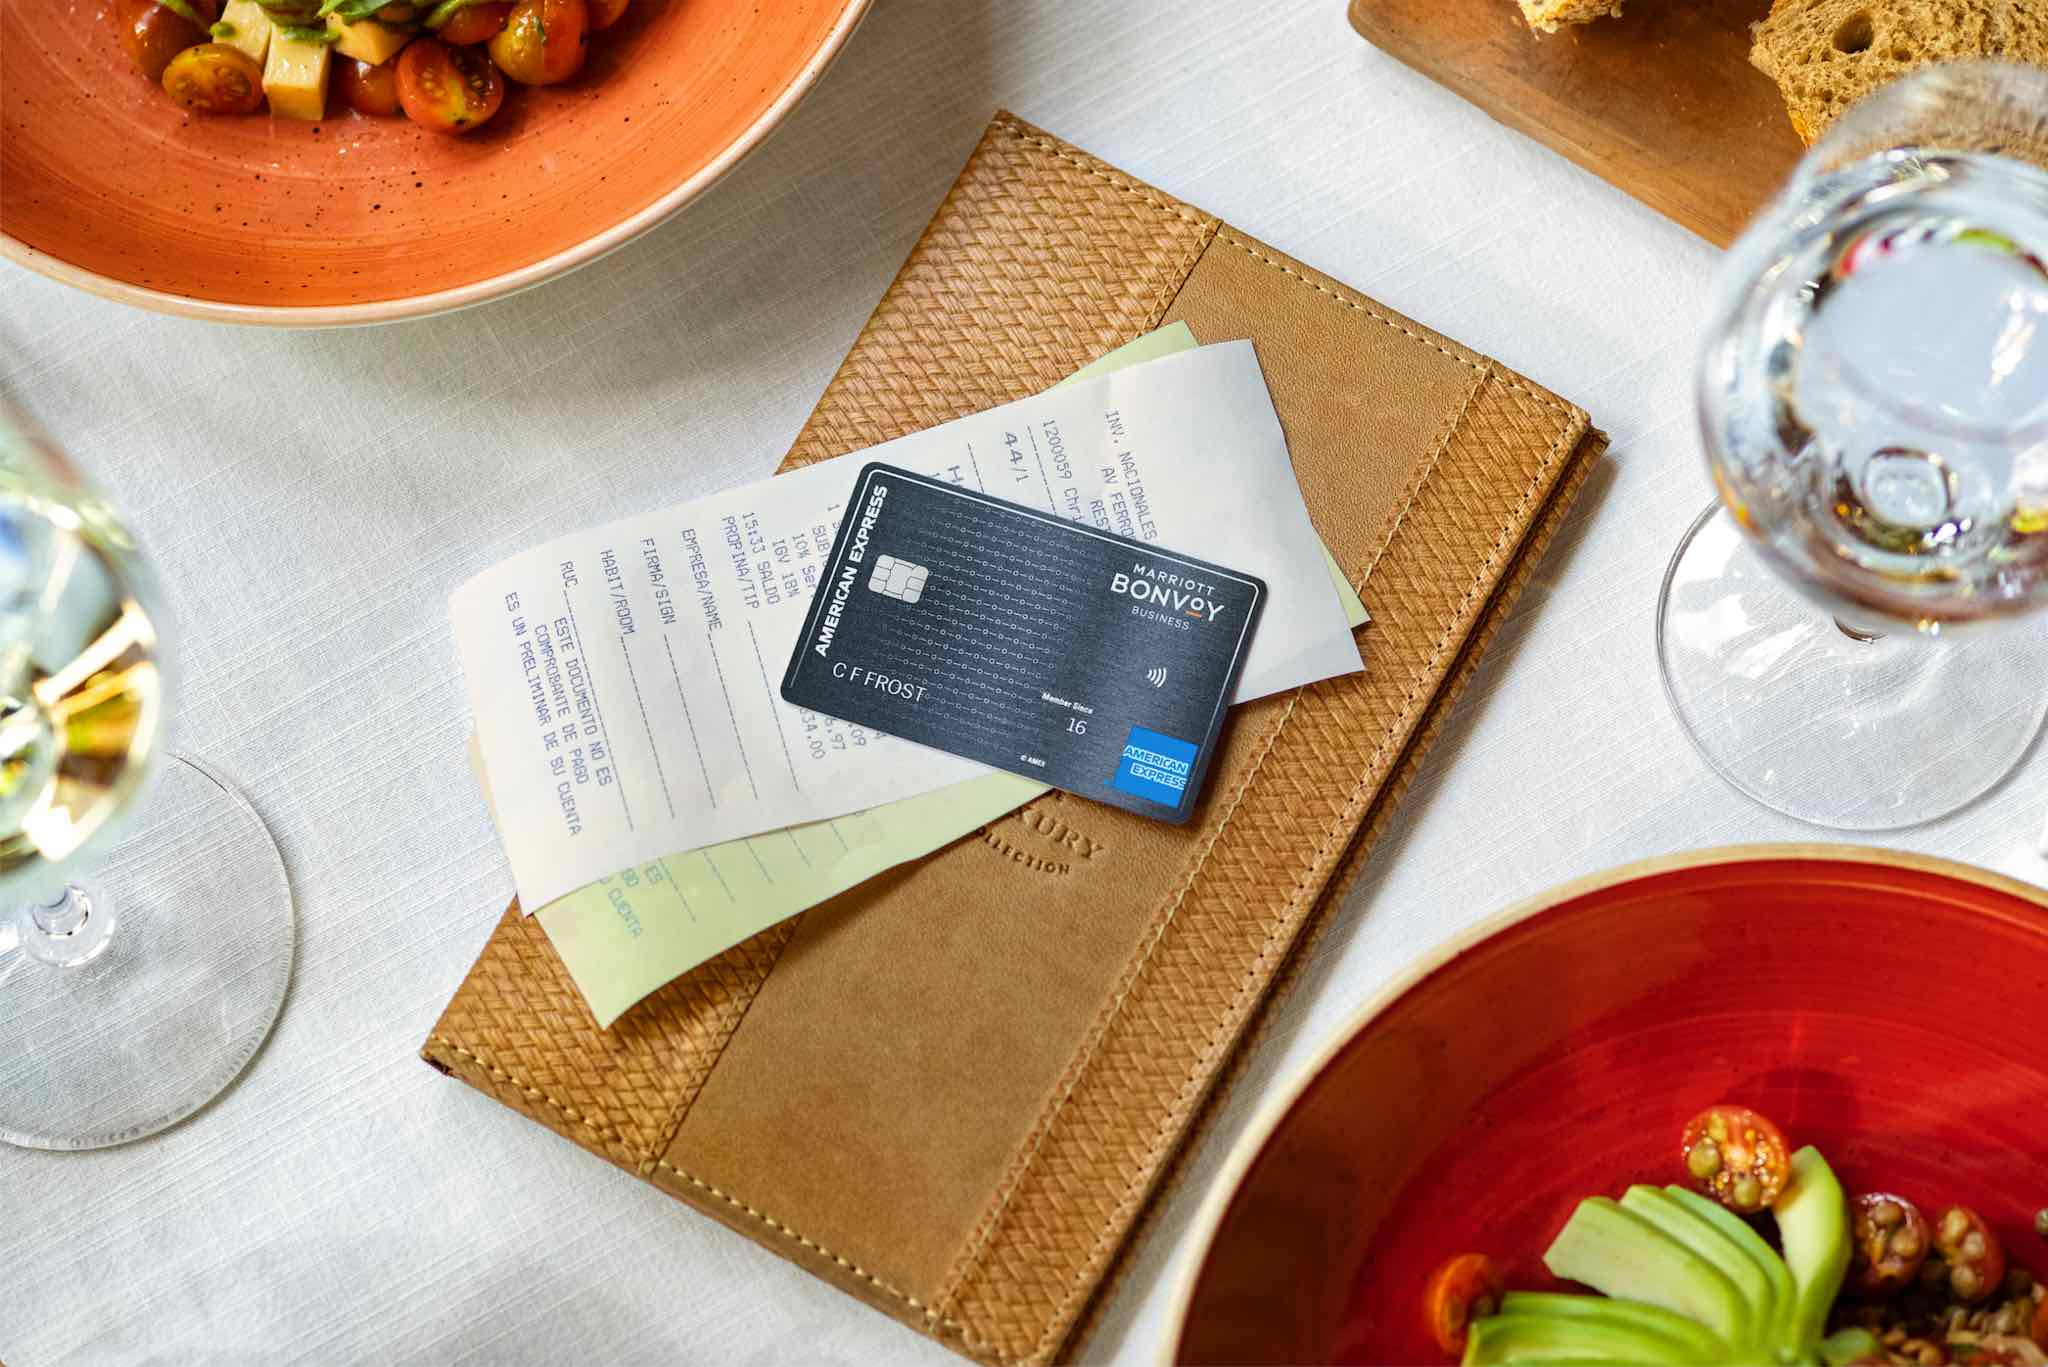 Amex Adds 10X Earning Categories To Marriott Bonvoy Credit Cards